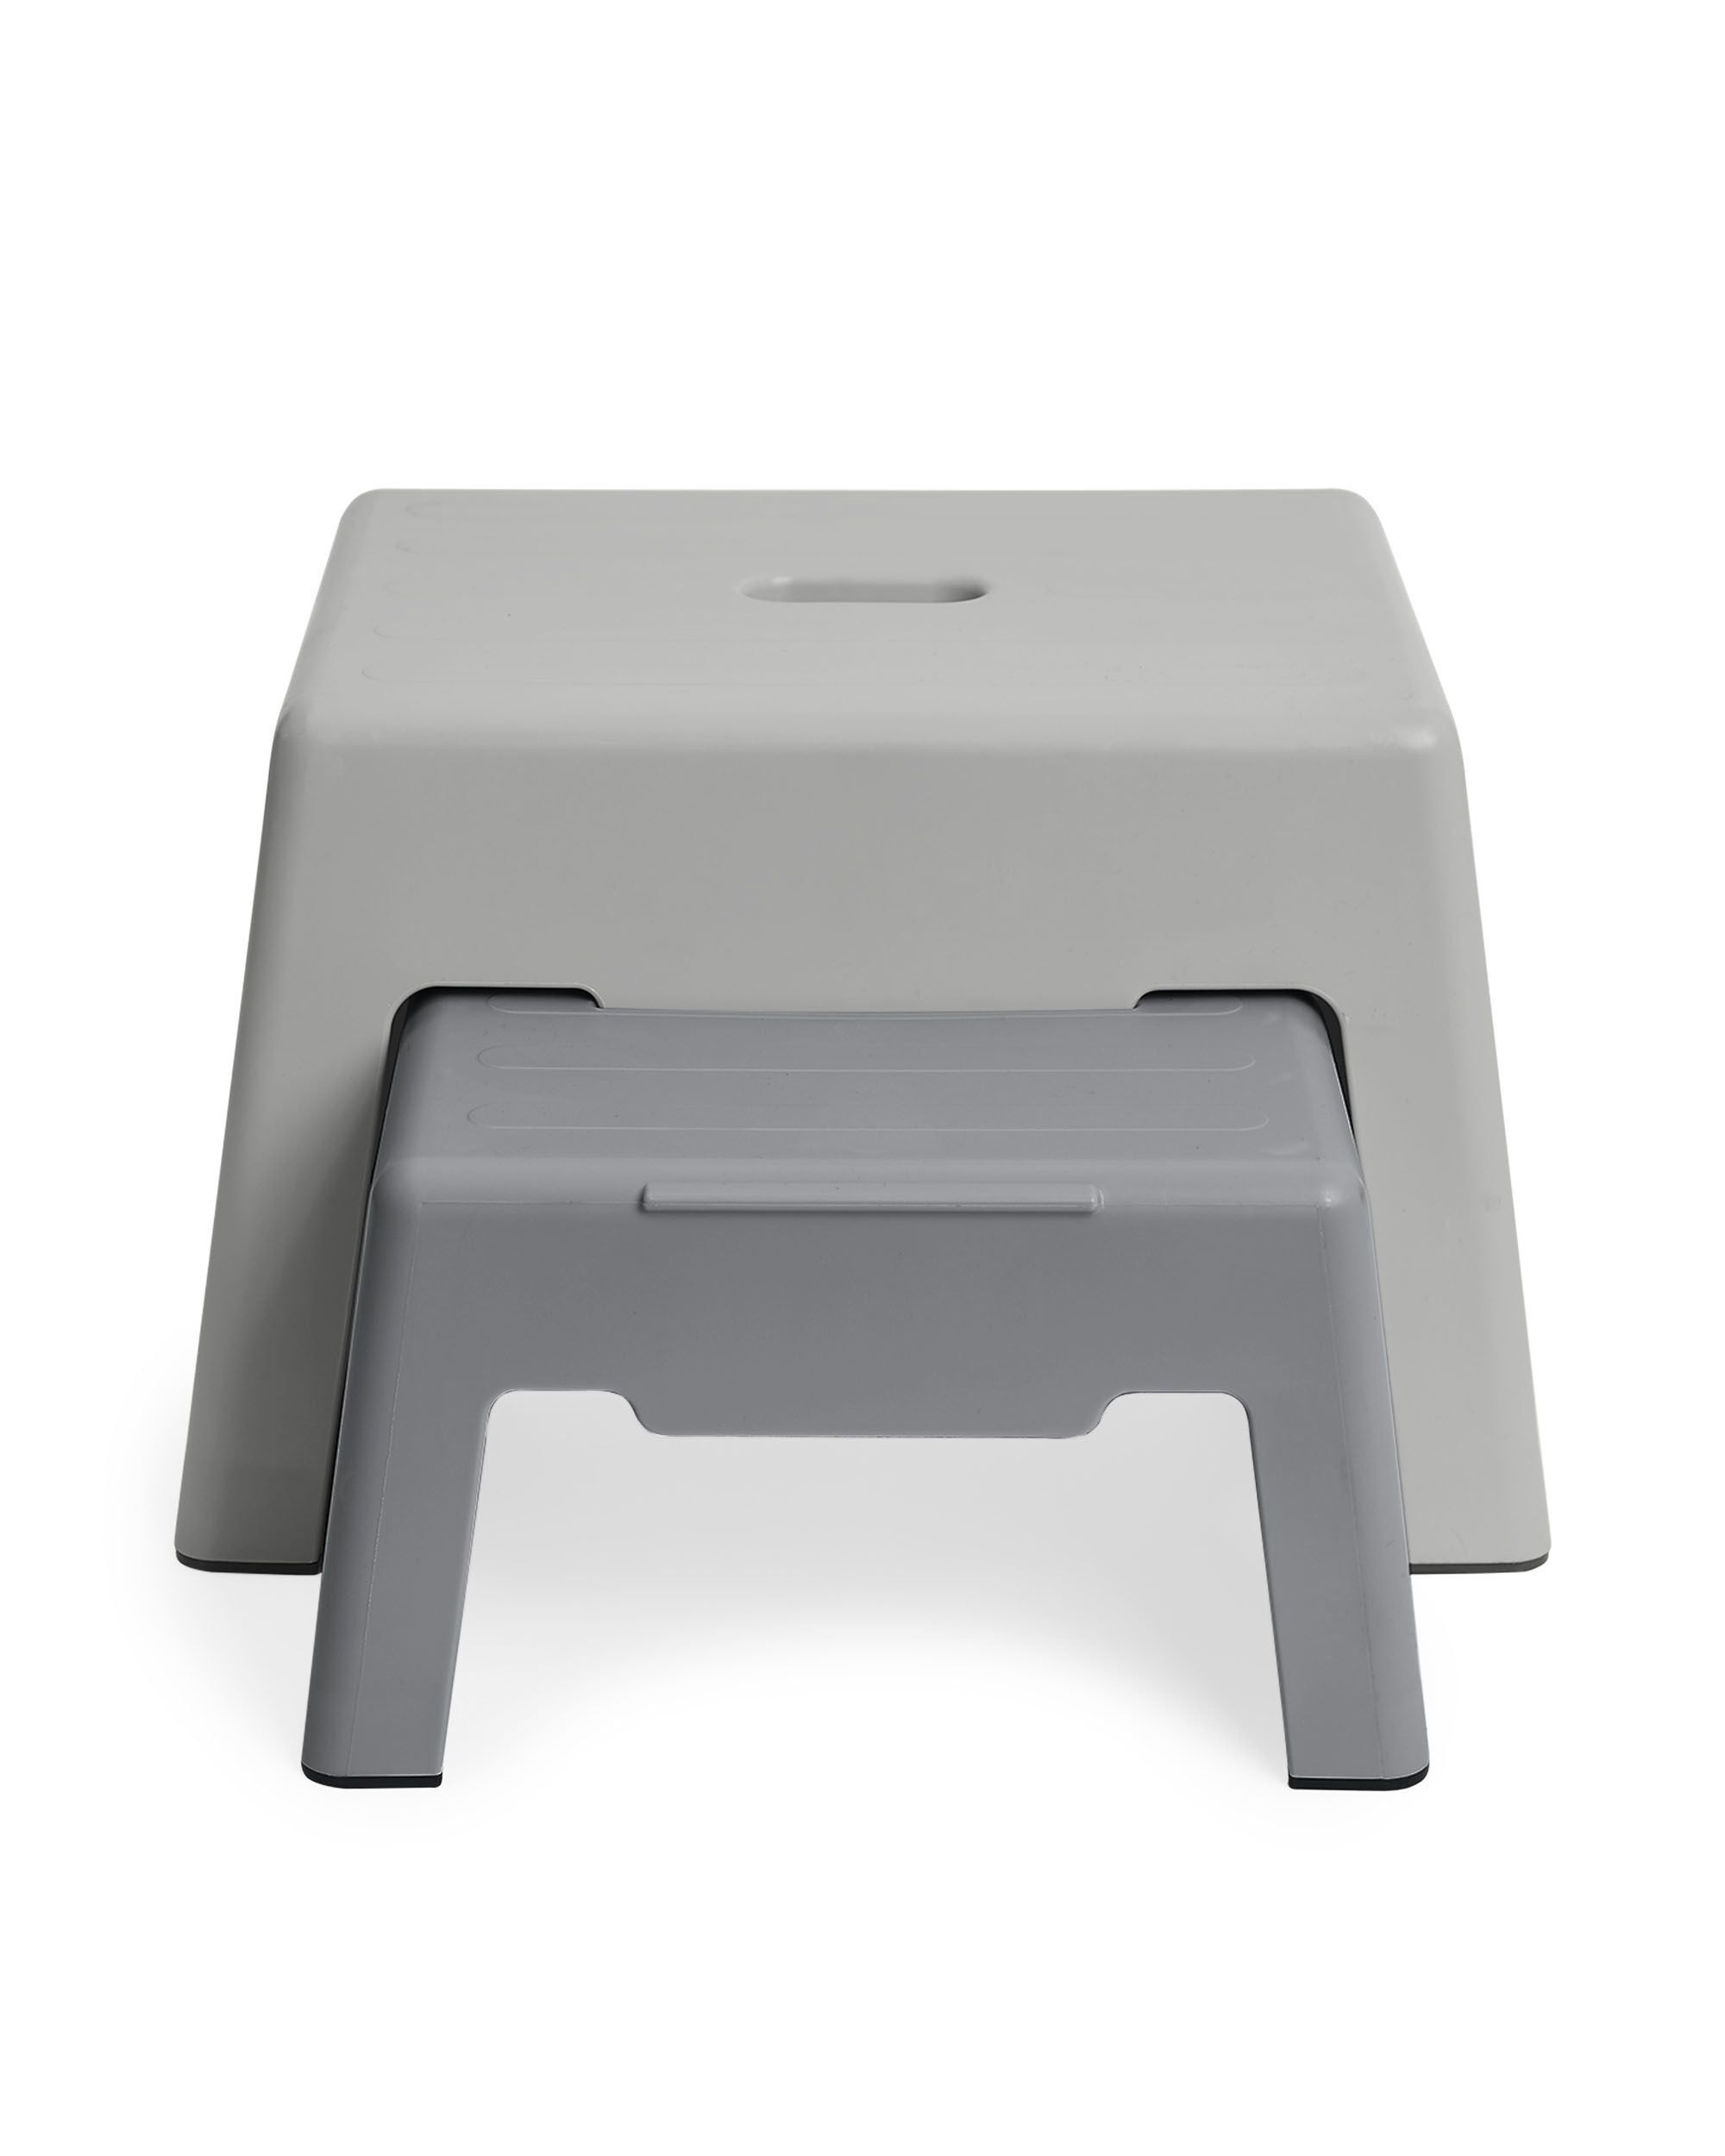 Oshkoshbgosh Double-Up Step Stool - Grey